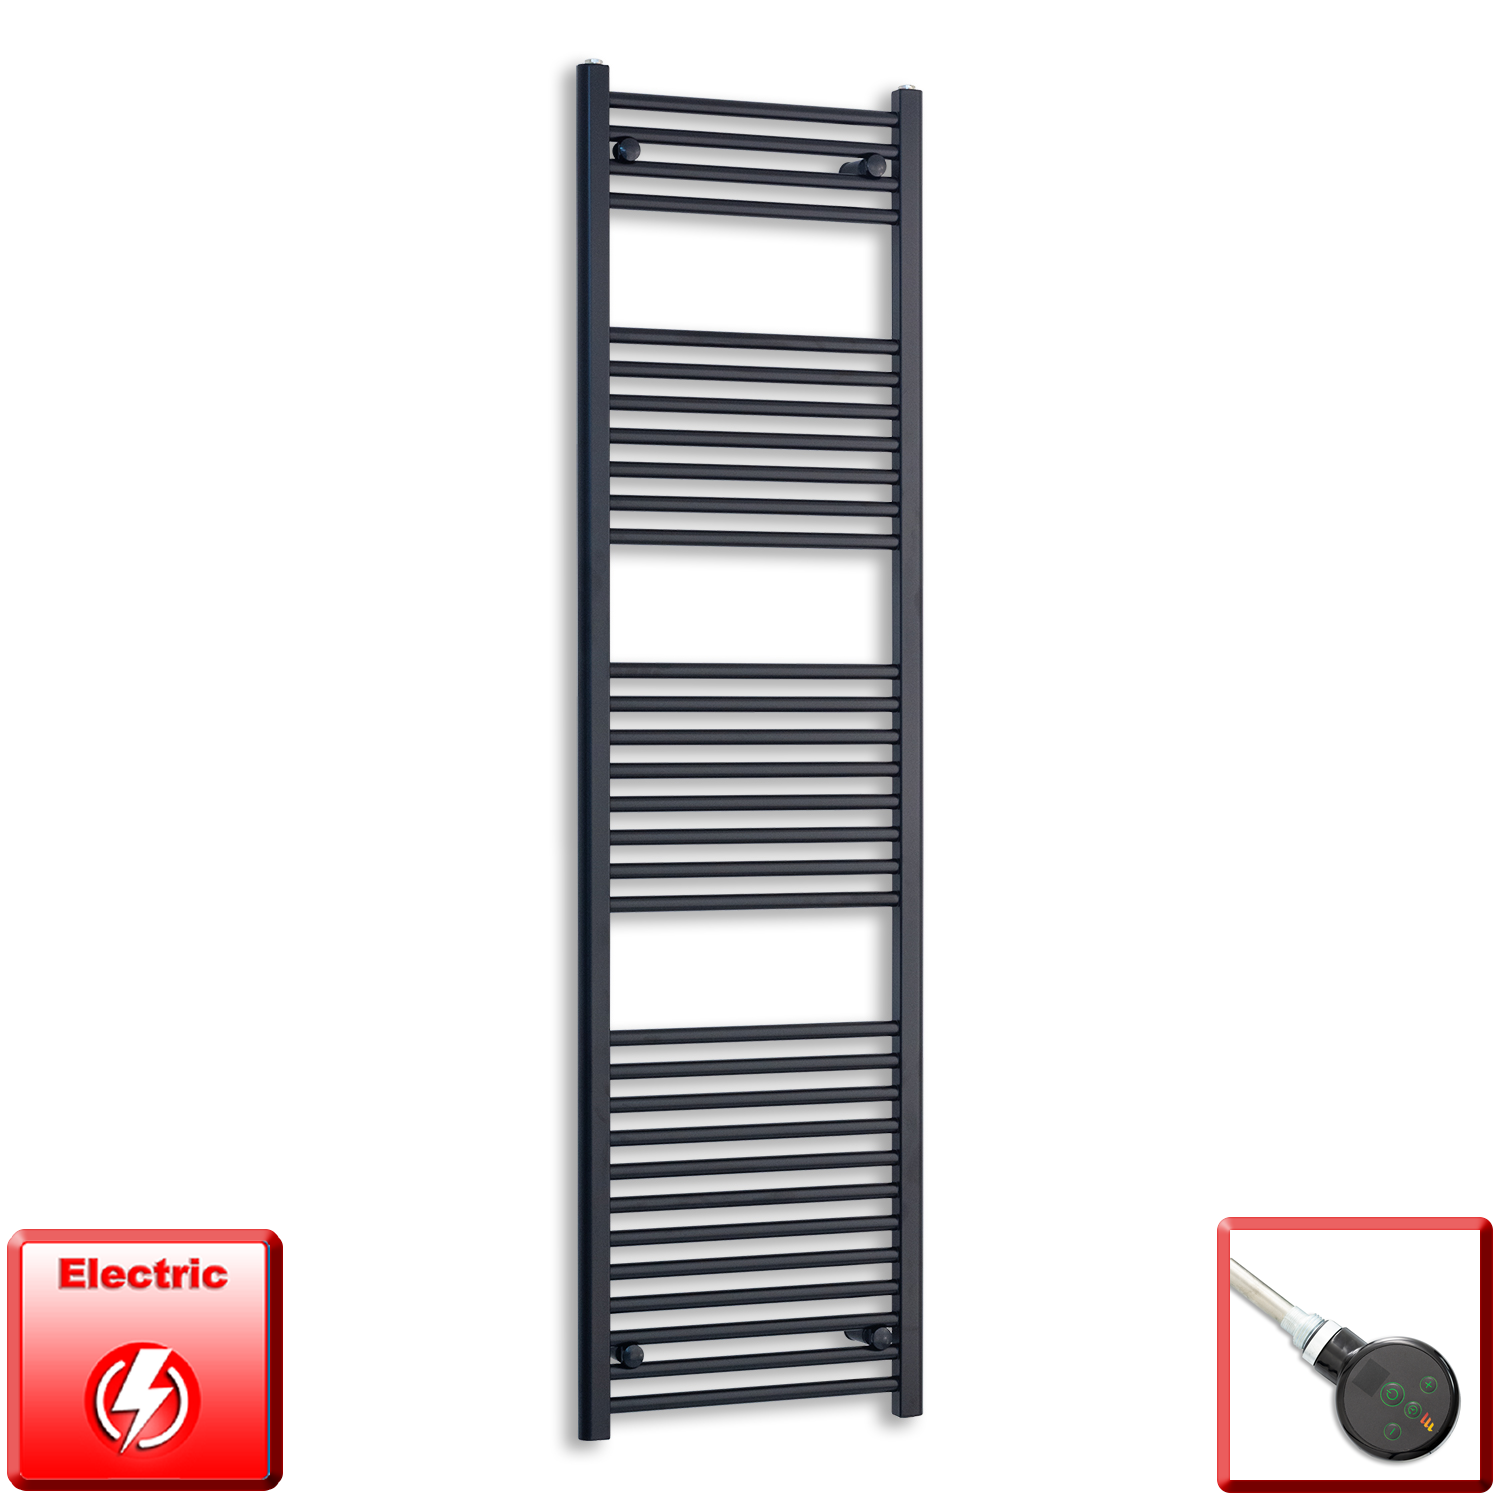 600mm Wide 1800mm High Pre-Filled Black Electric Towel Rail Radiator With Thermostatic DIGI Element